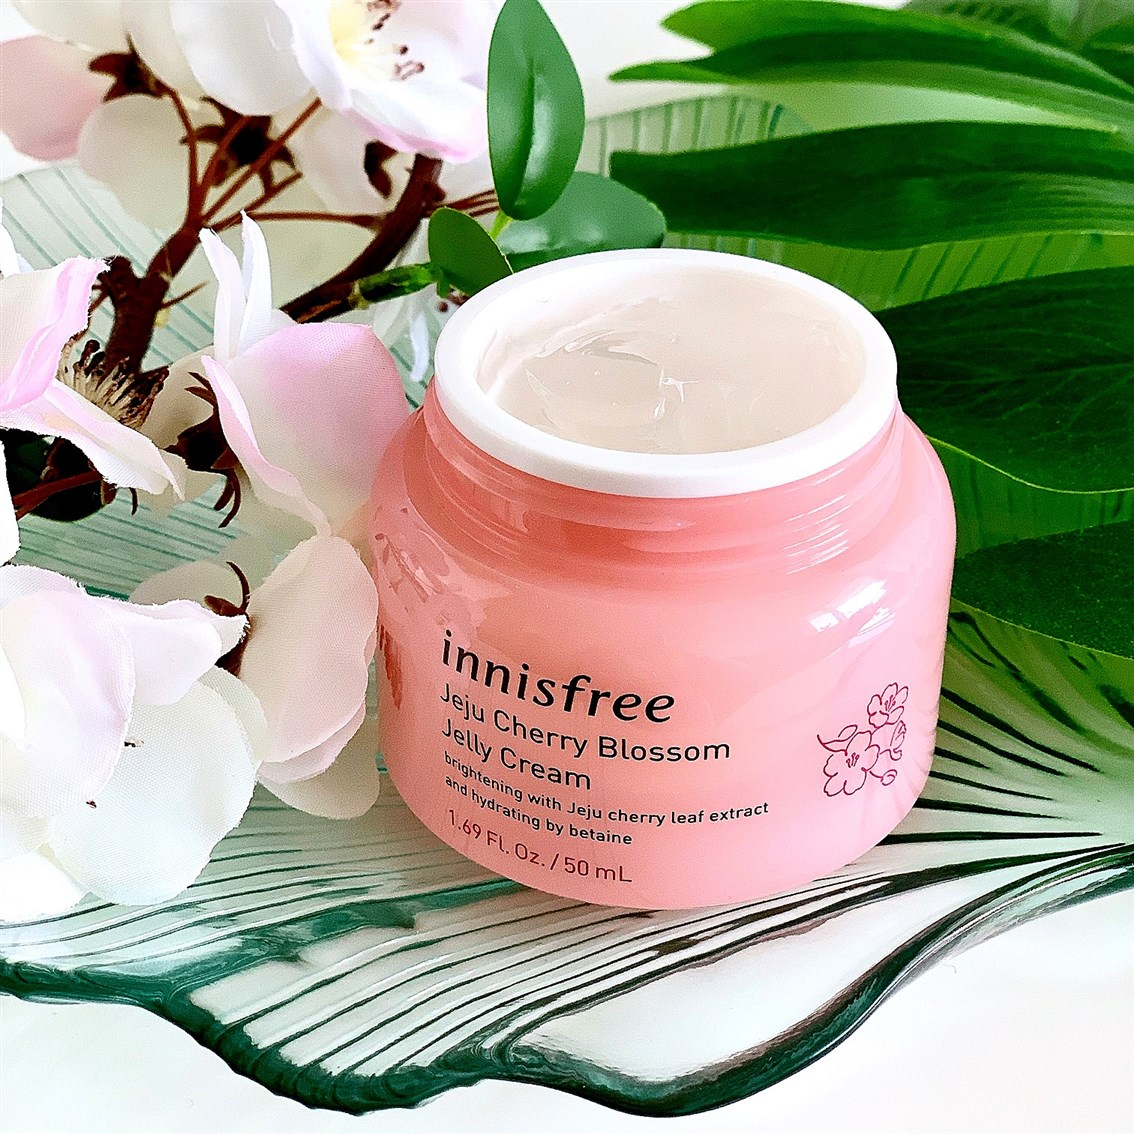 Innisfree Jeju Cherry Blossom Jelly Cream blog